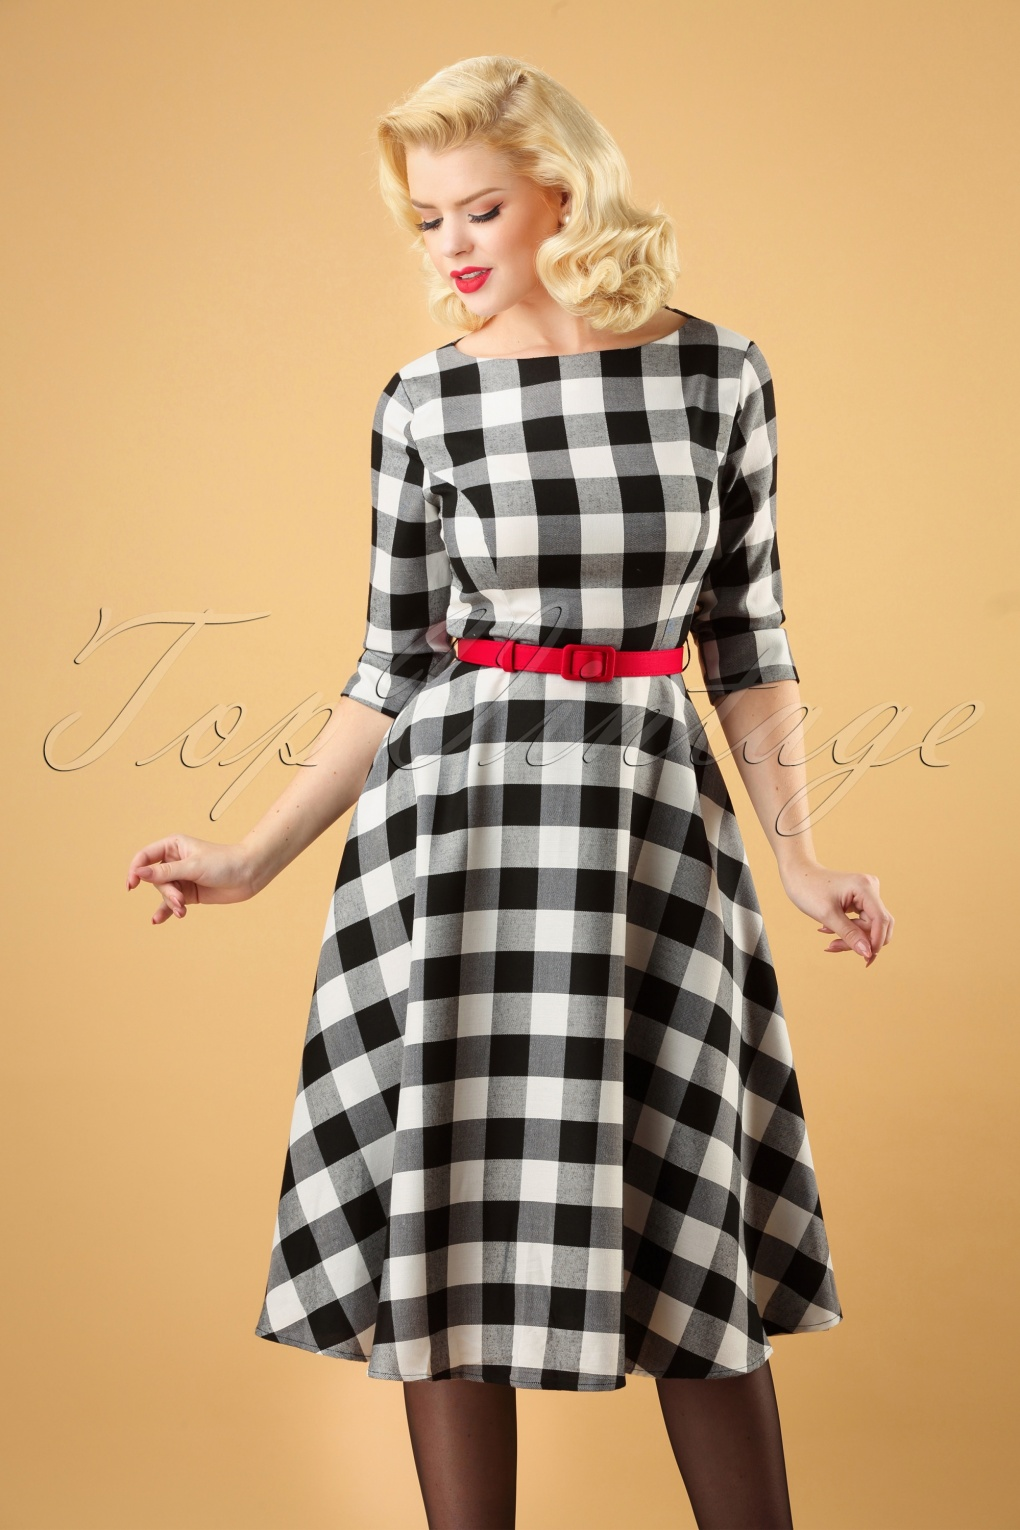 1950s Dresses, 50s Dresses | 1950s Style Dresses 50s Suzanne Gingham Swing Dress in Black and White £70.26 AT vintagedancer.com